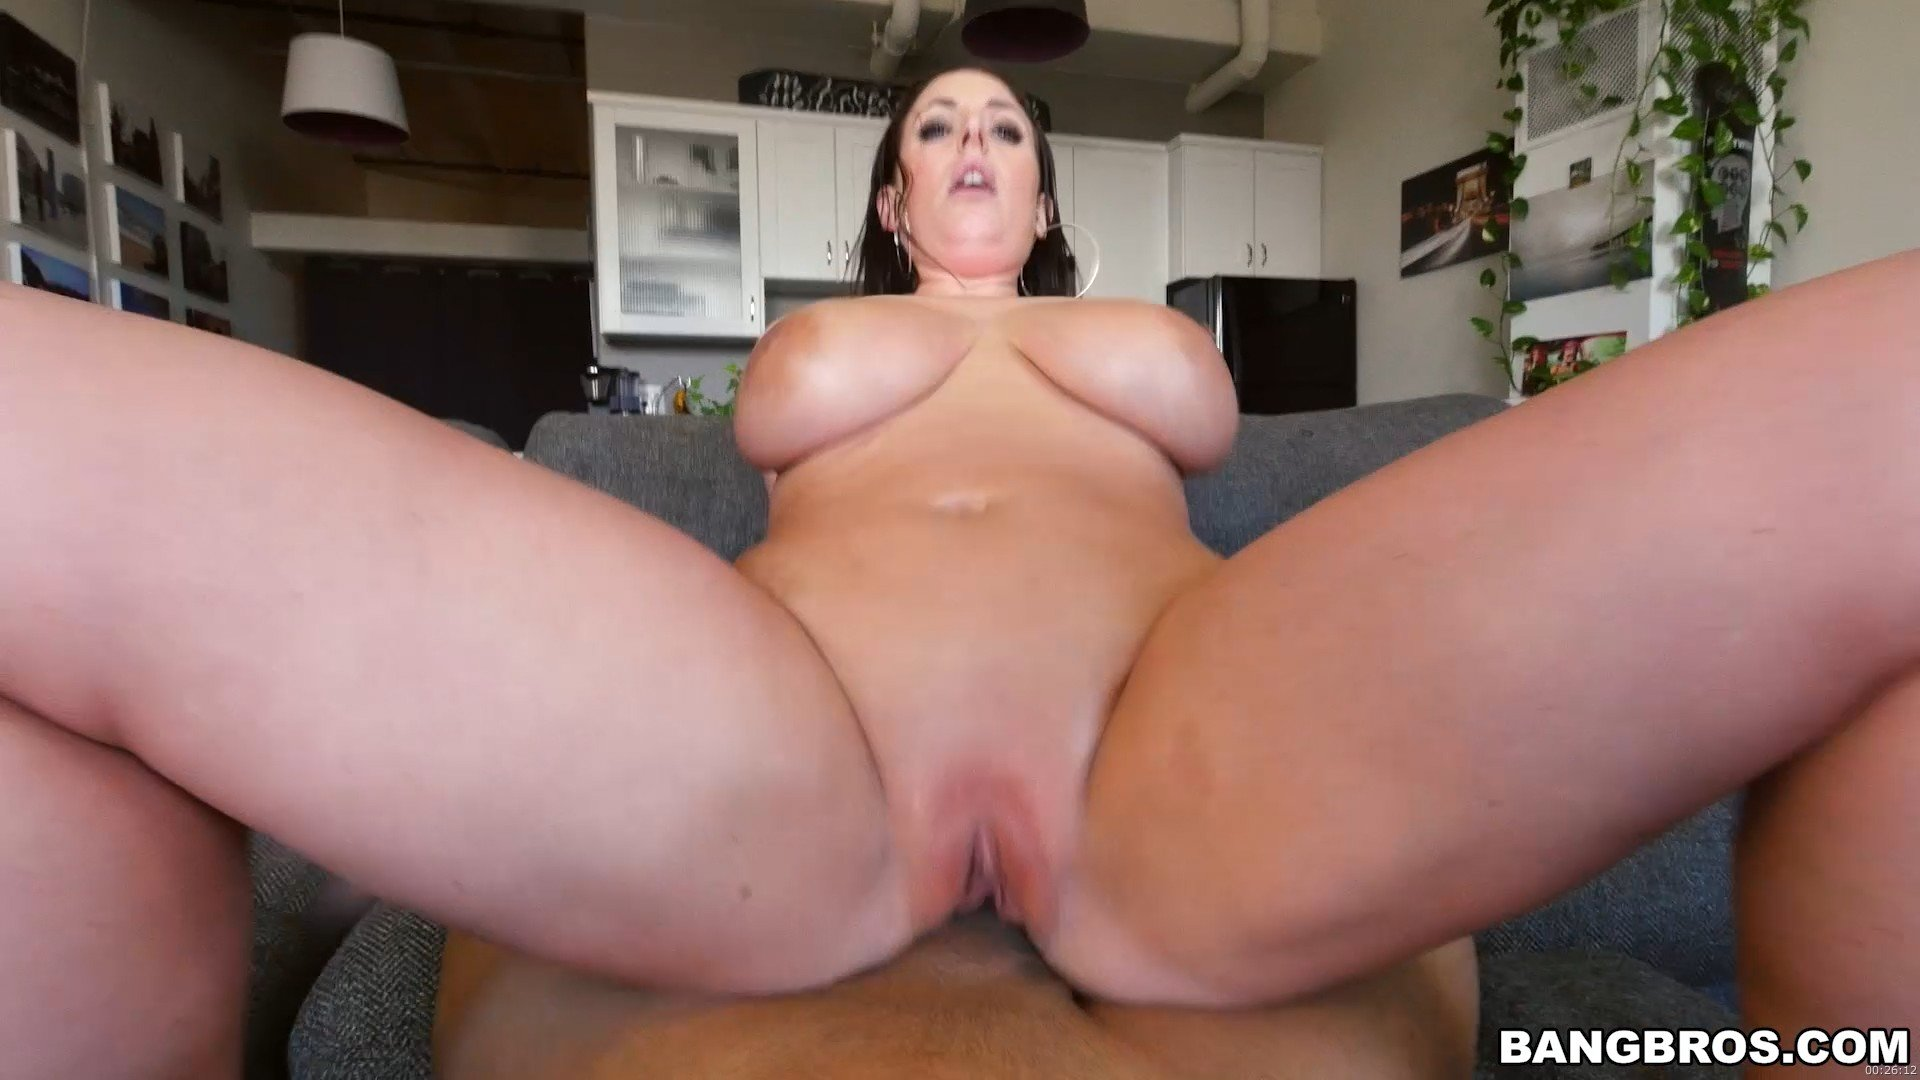 [bangbros]2017-02-23 Angela White's 32 double g tits are breathtaking